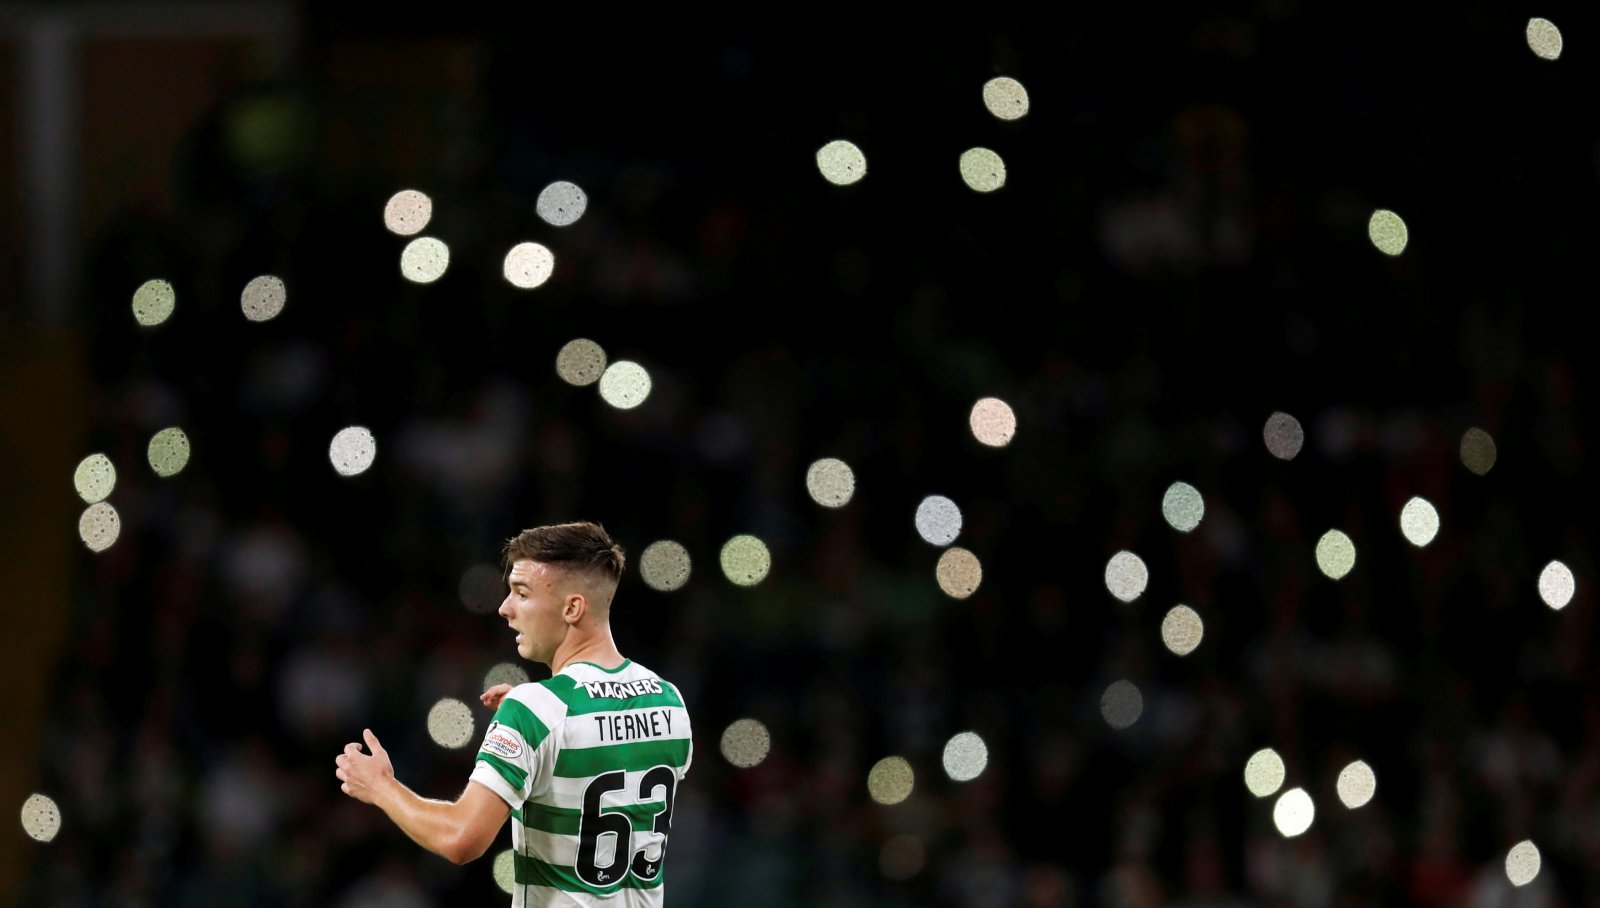 Kieran Tierney should be fine and ready for Thursday